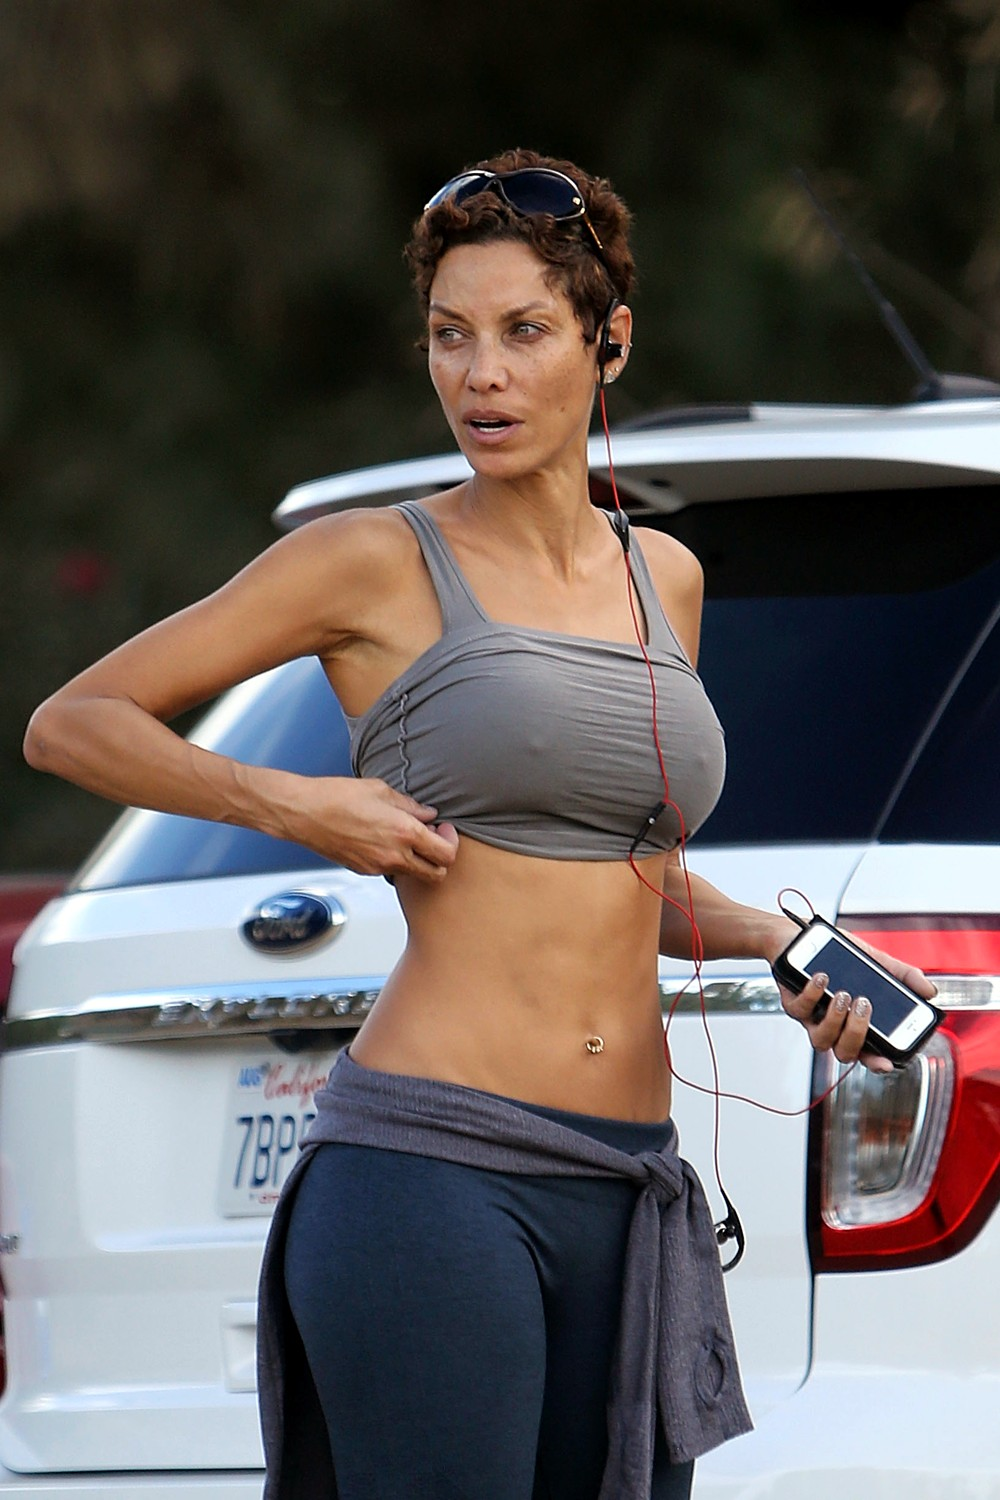 Milf in sports bra